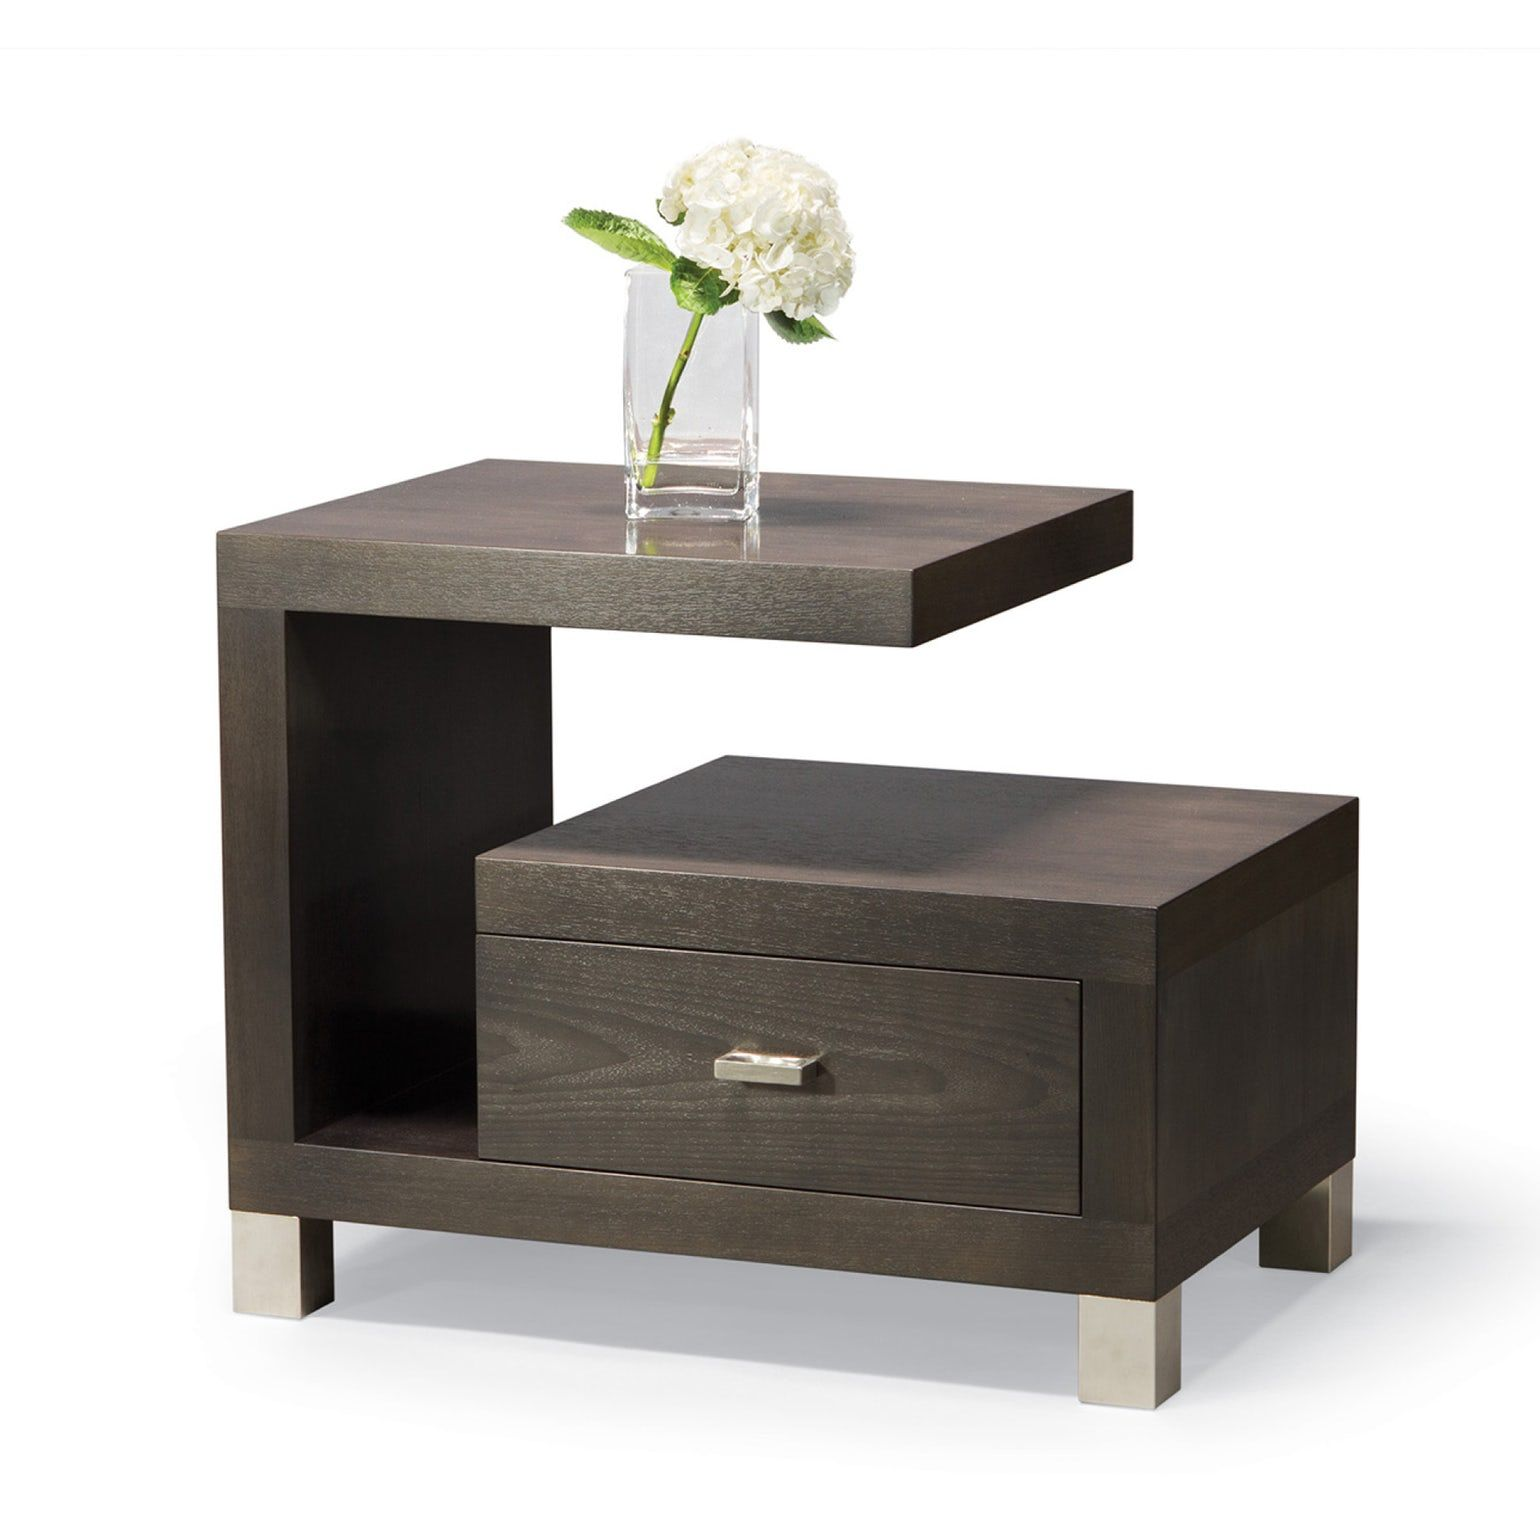 Cantilever Night Stand Contemporary Midcentury Modern Metal